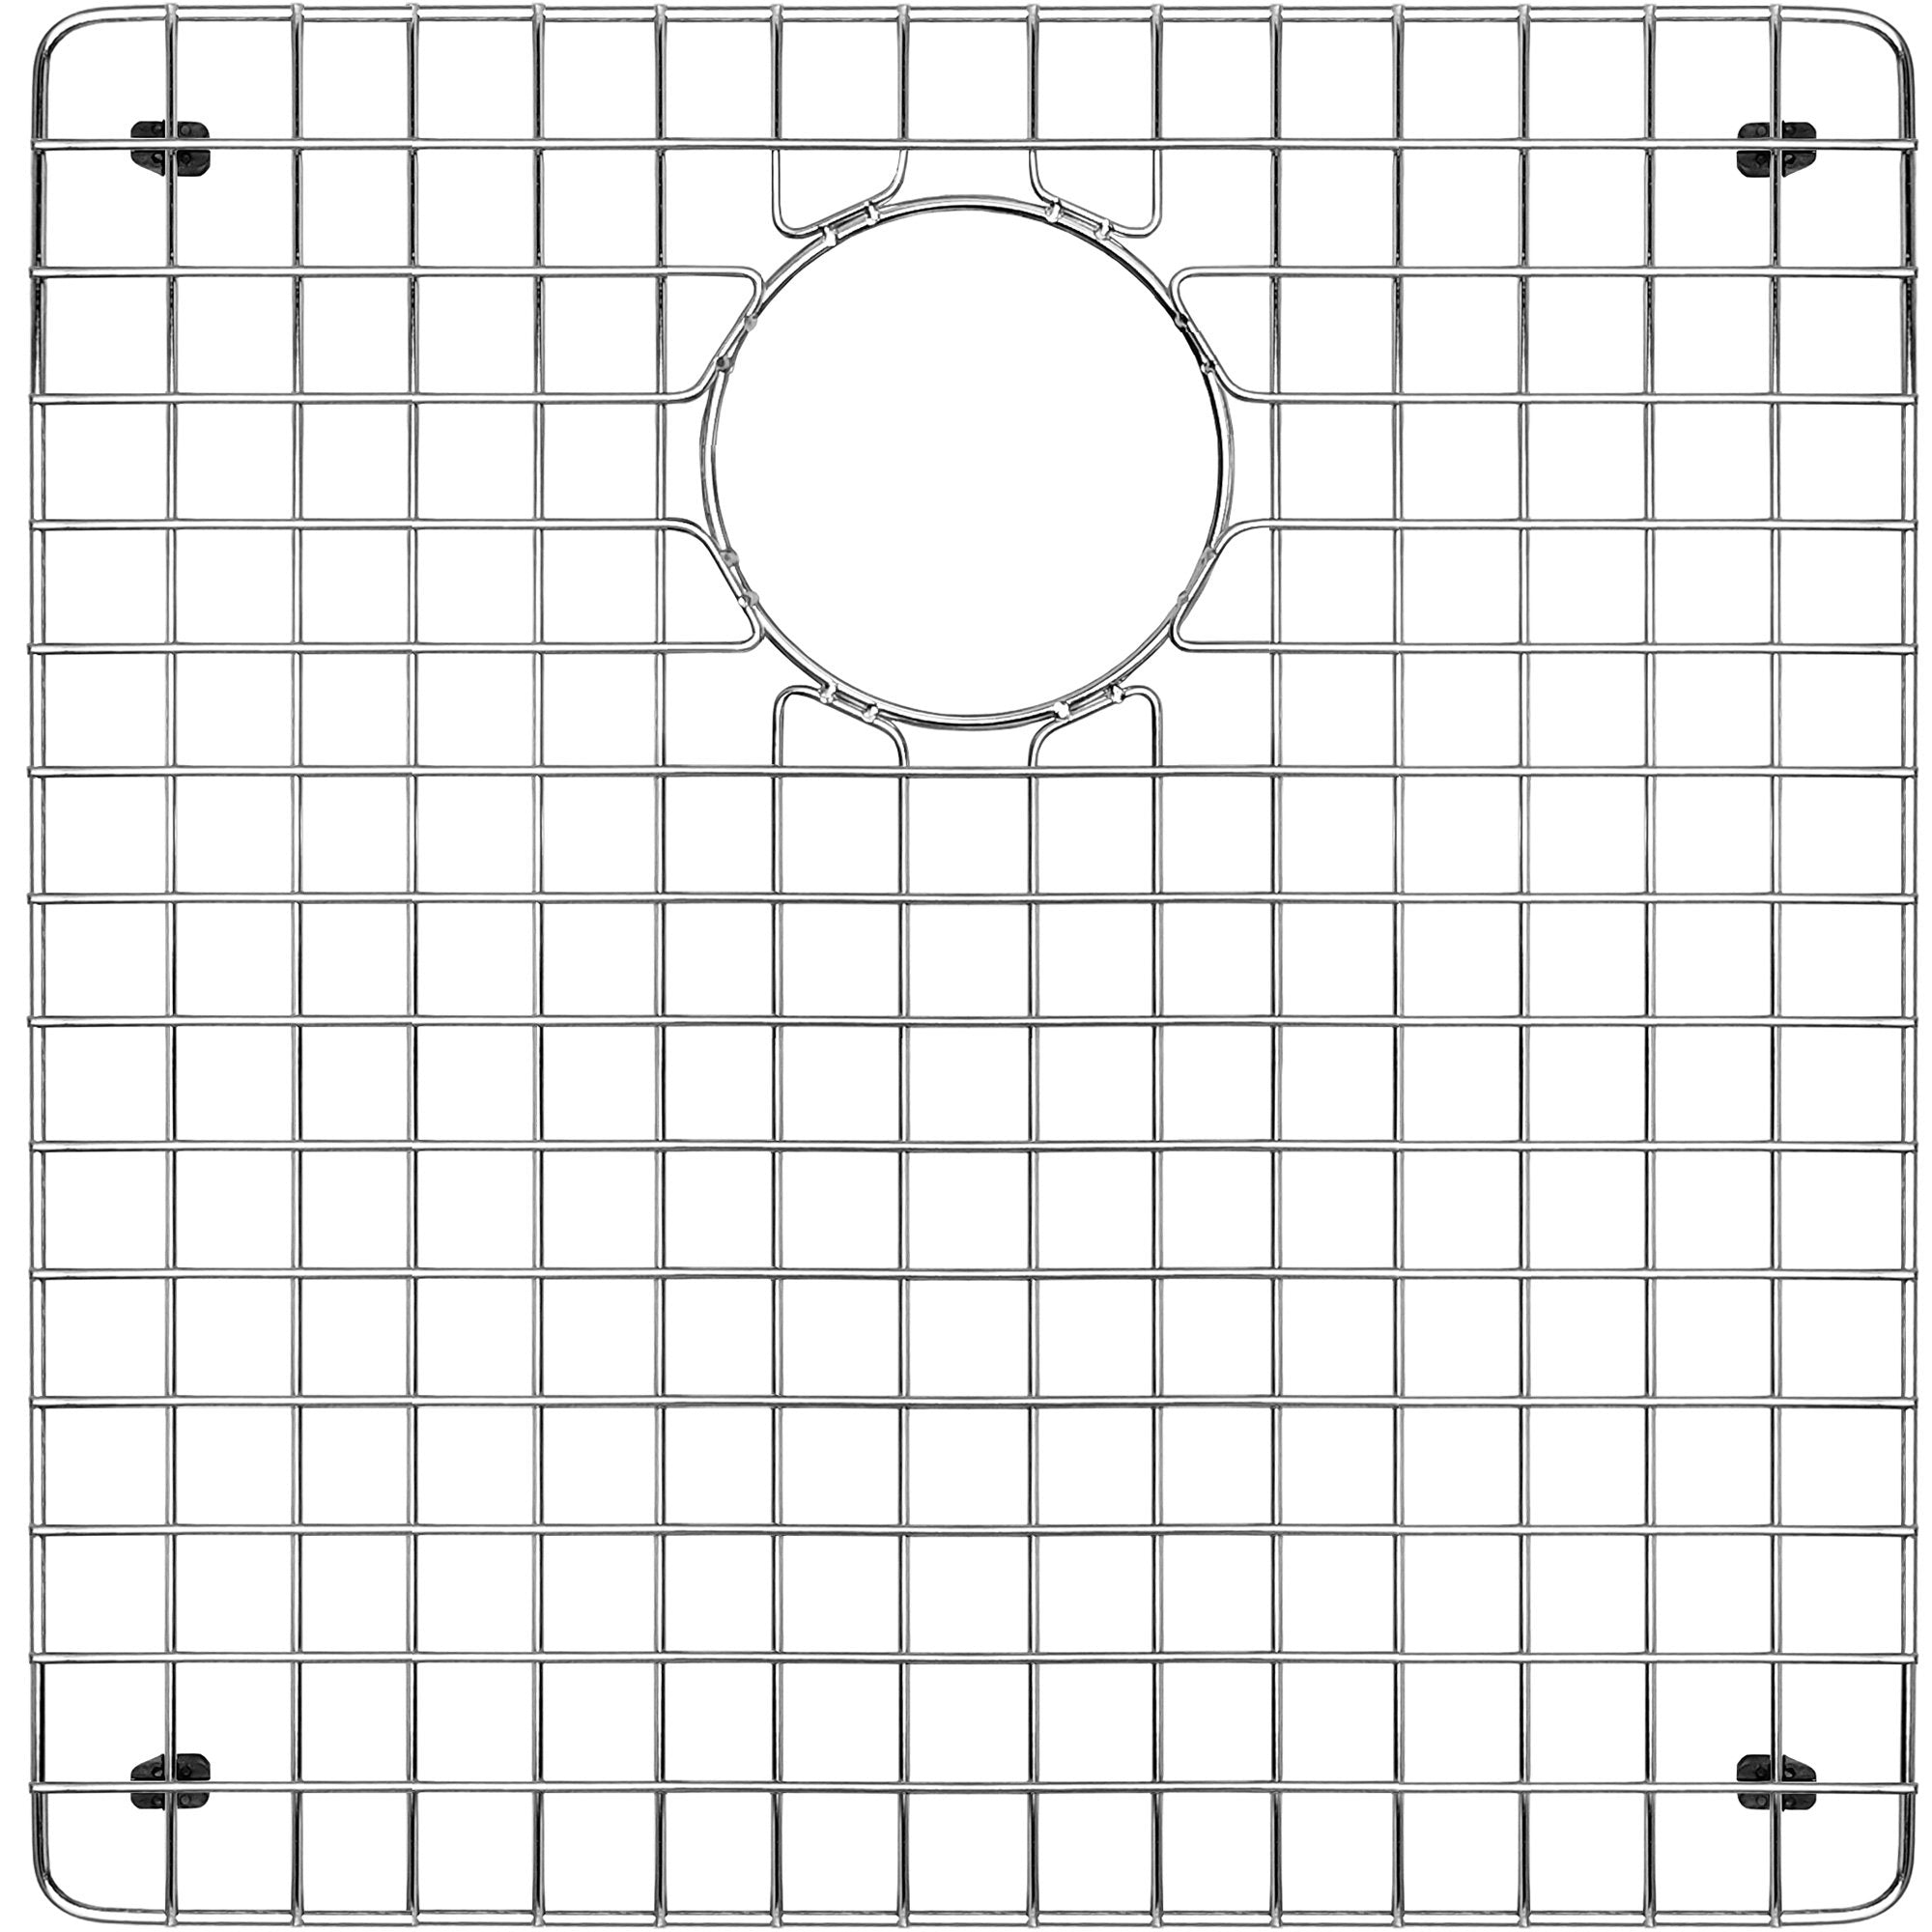 Stainless Steel Kitchen Sink Grid For Noah's Sink Model WHNCM1920